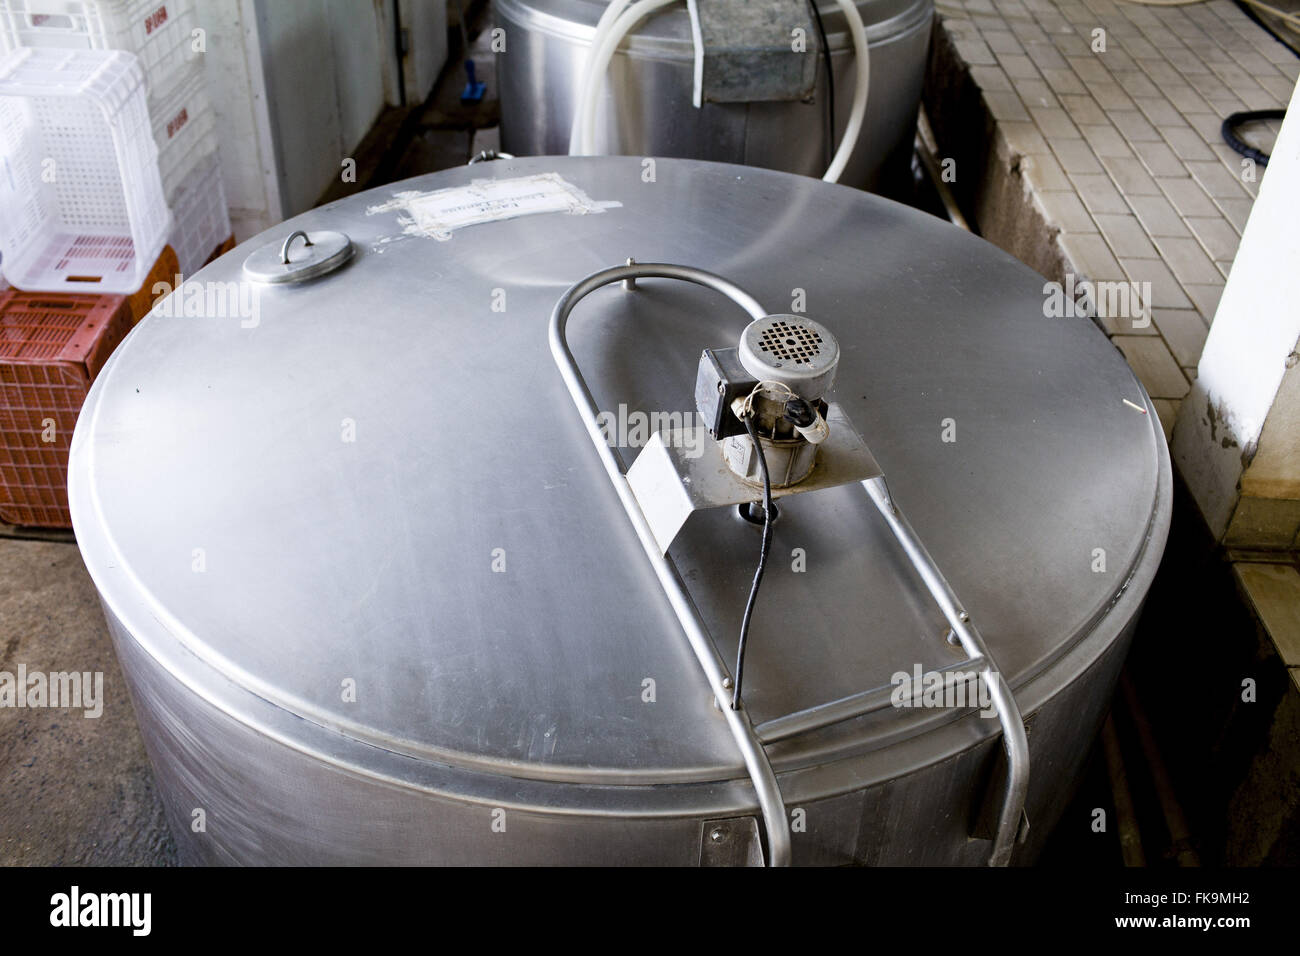 Dairy - cheese production bufala in rural municipality - Stock Image